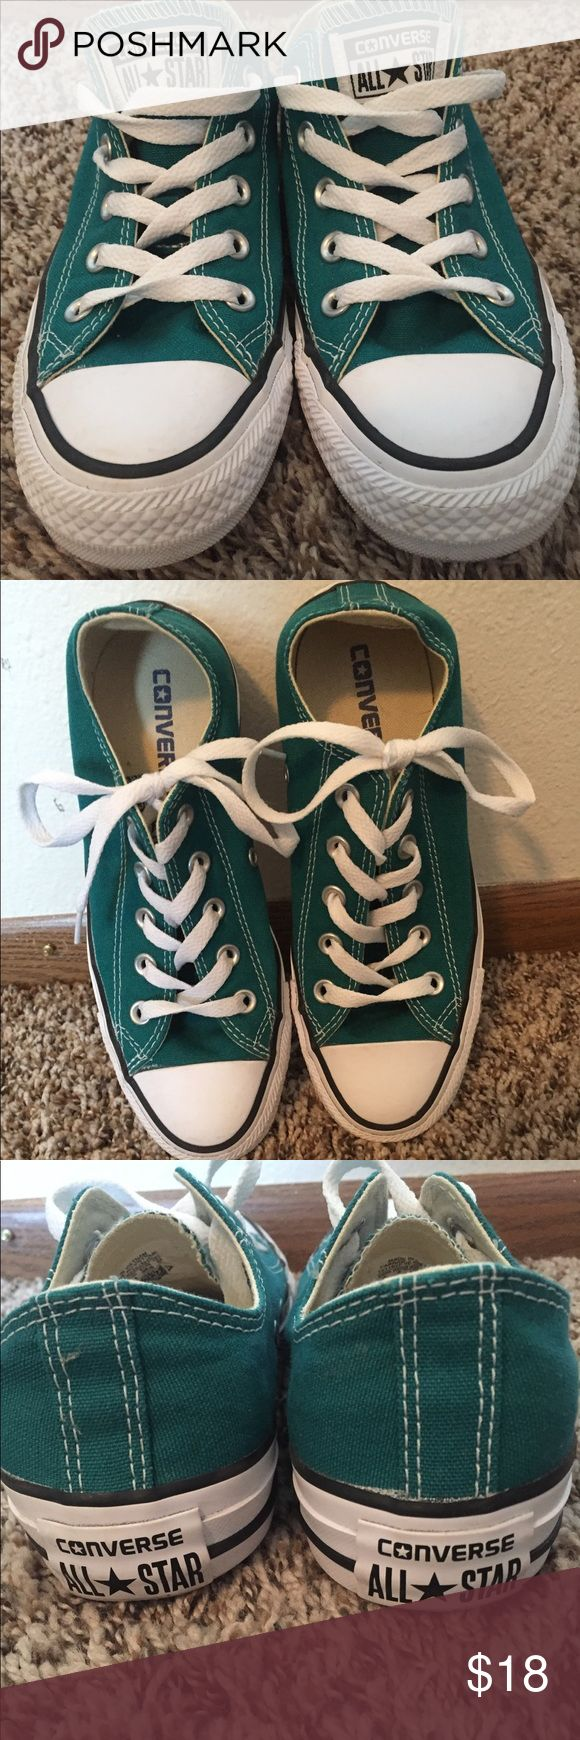 Teal Converse Teal converse, size 6, gently worn Converse Shoes Sneakers